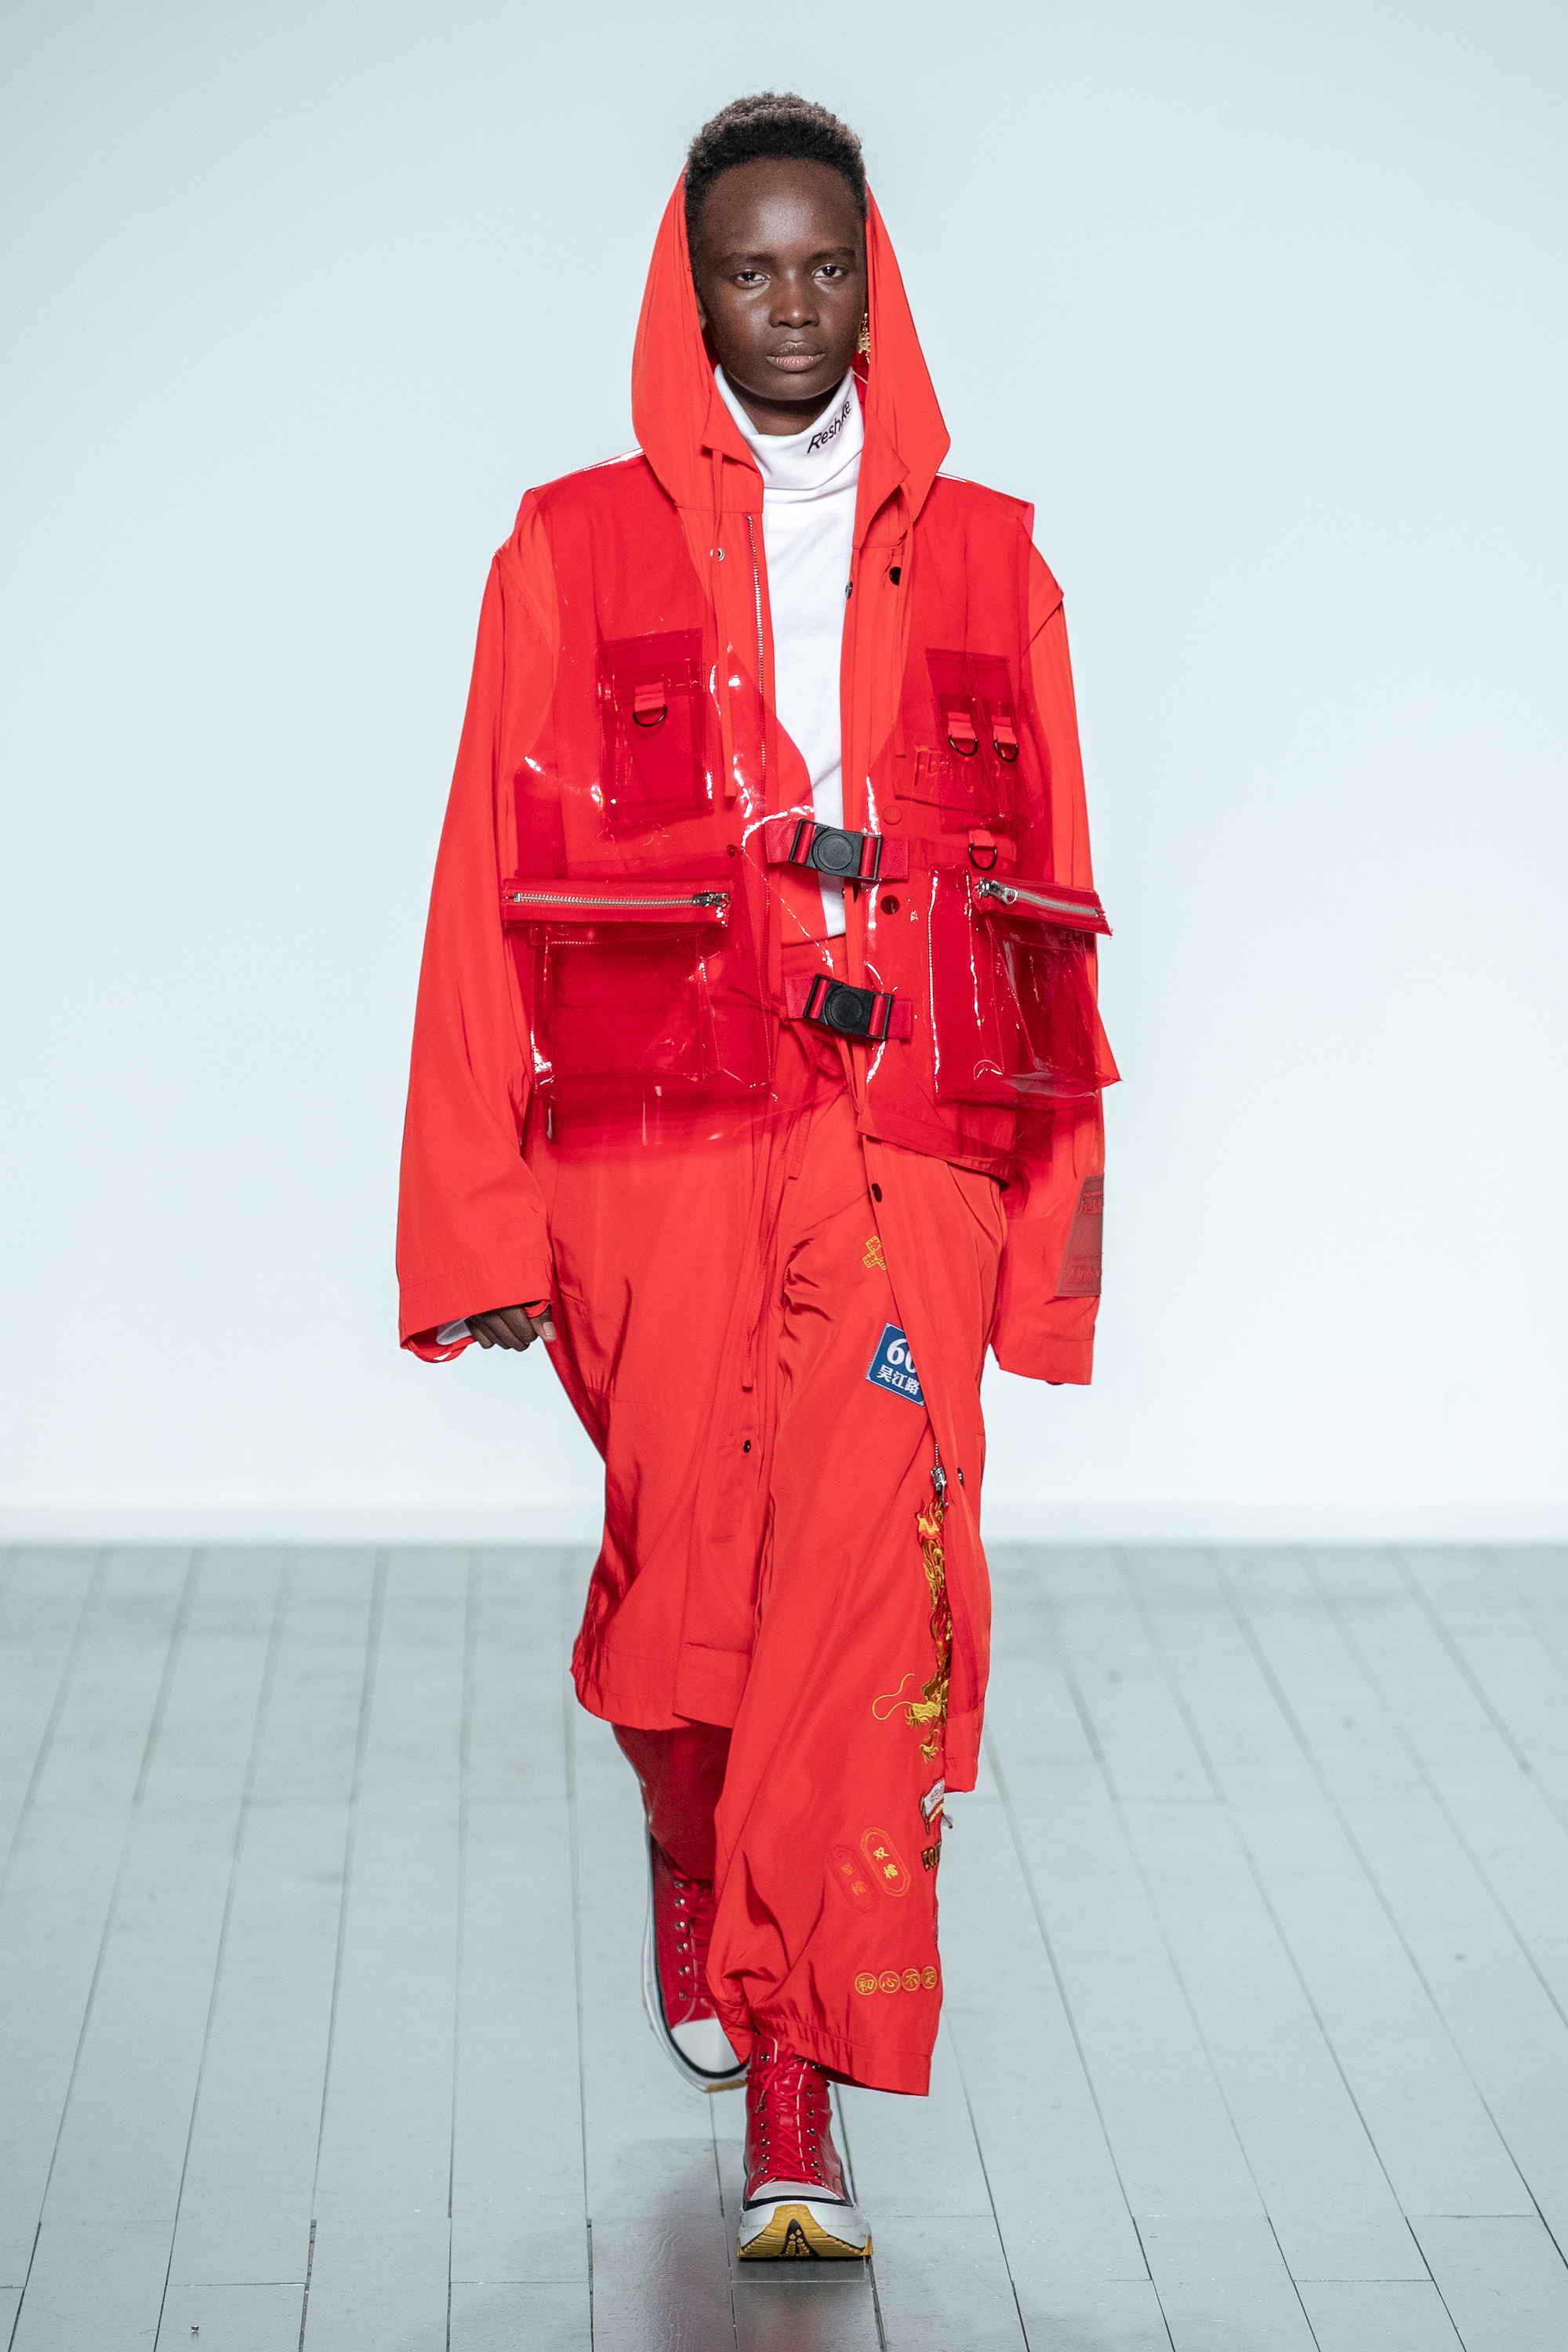 London Fashion Week Autumn Winter 2019 - On|Off Reshake red outfit